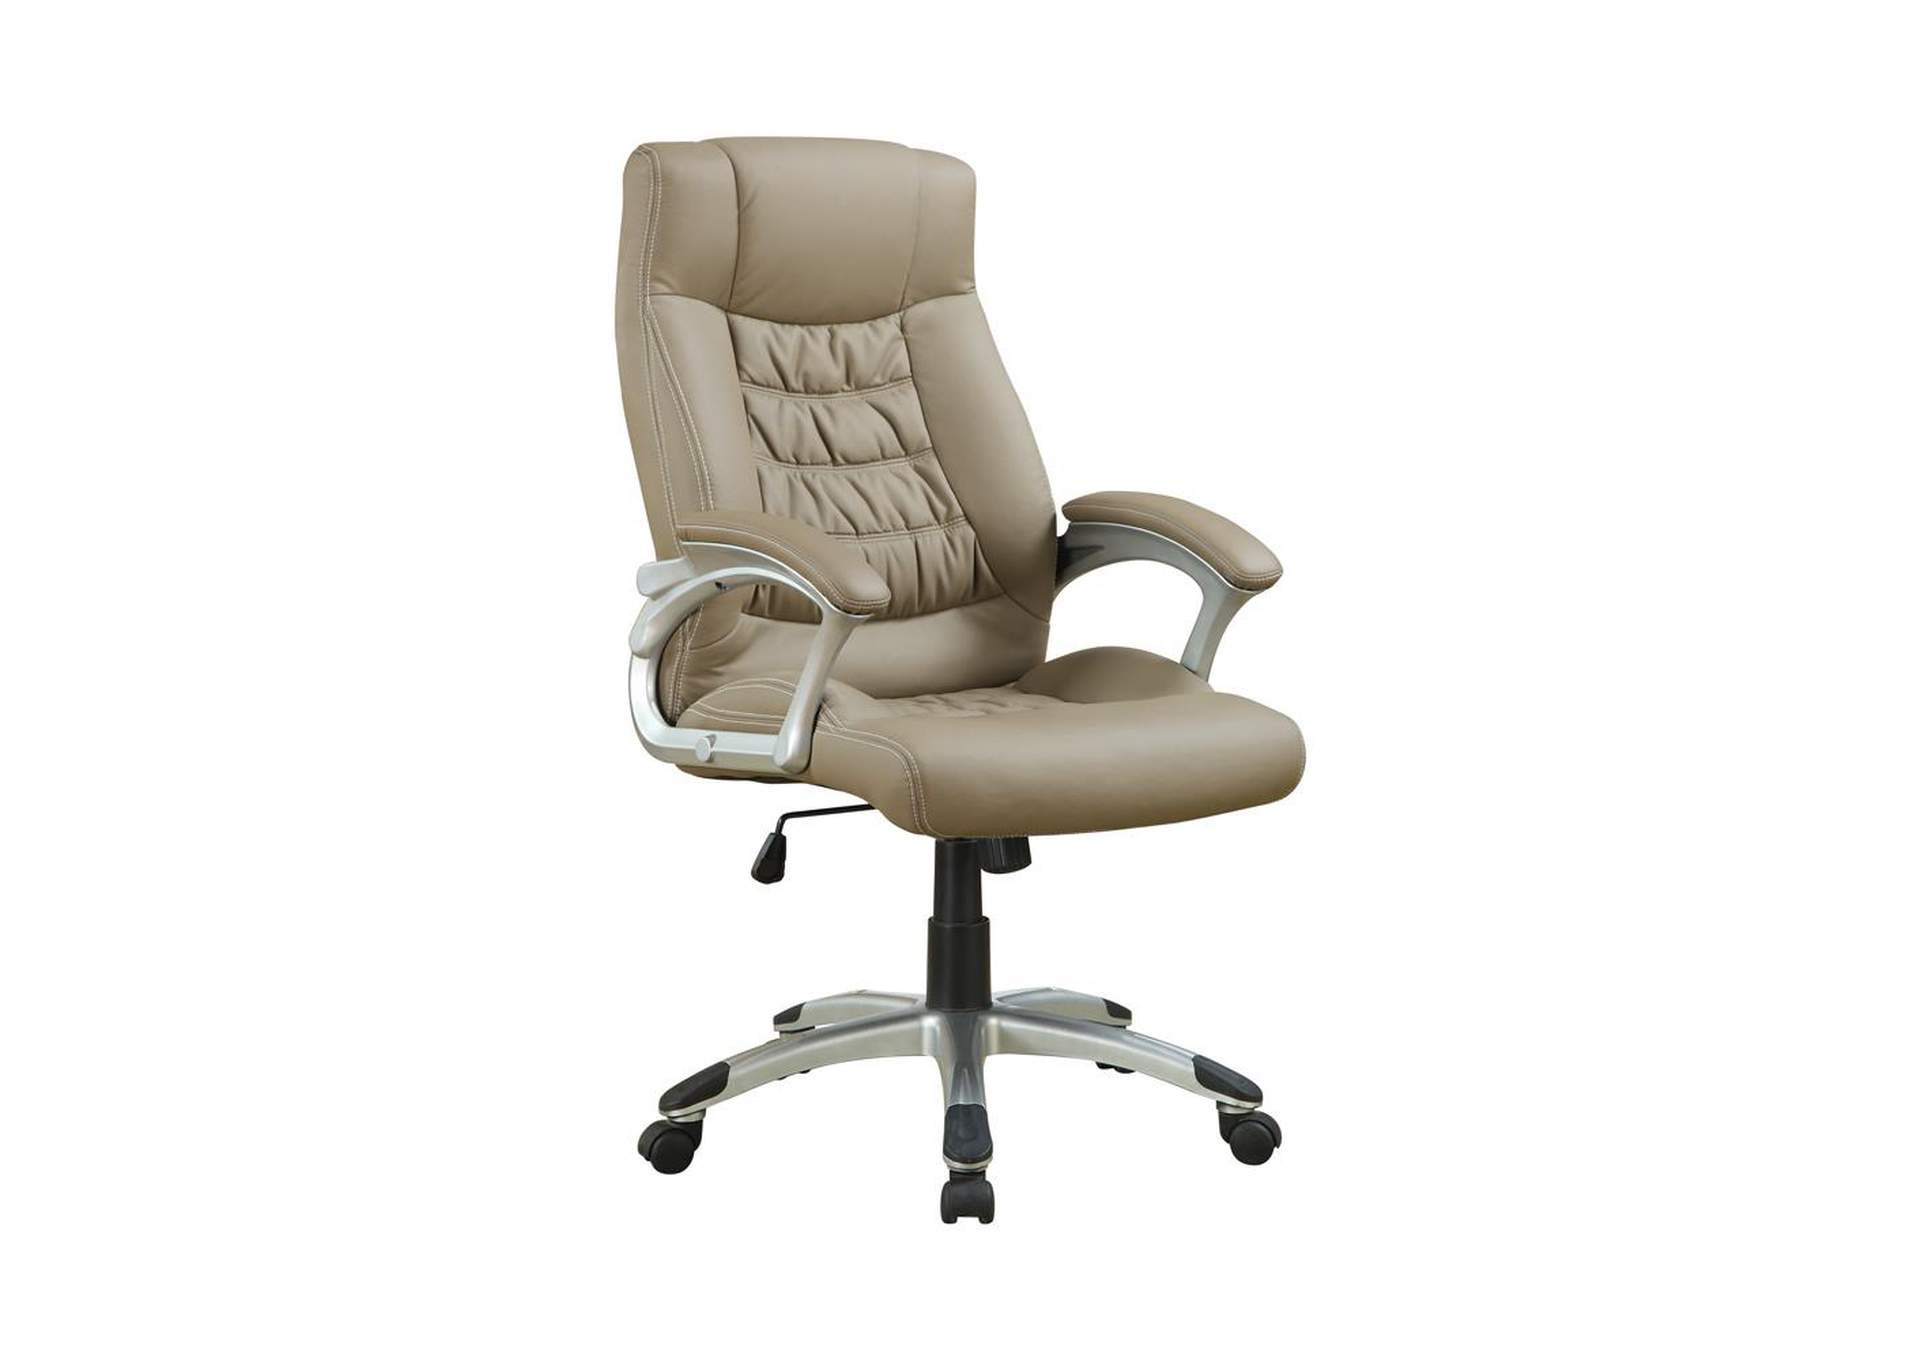 Silver Transitional Taupe Office Chair,Coaster Furniture